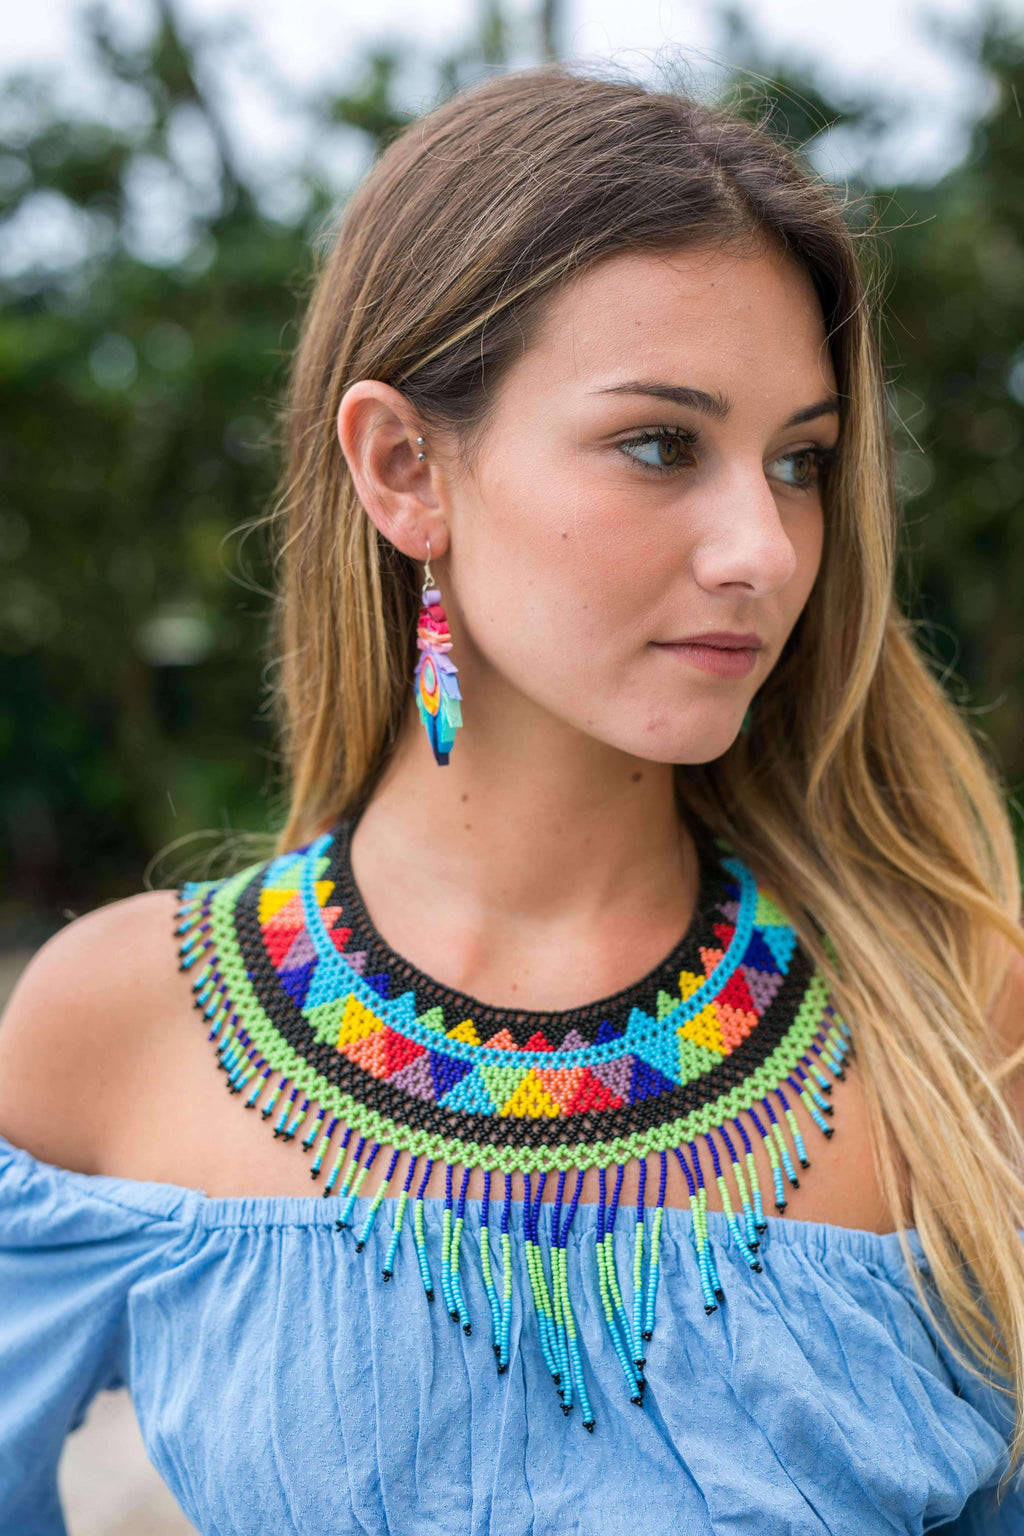 The Rainbow Collar Necklace #4 - Josephine Alexander Collective